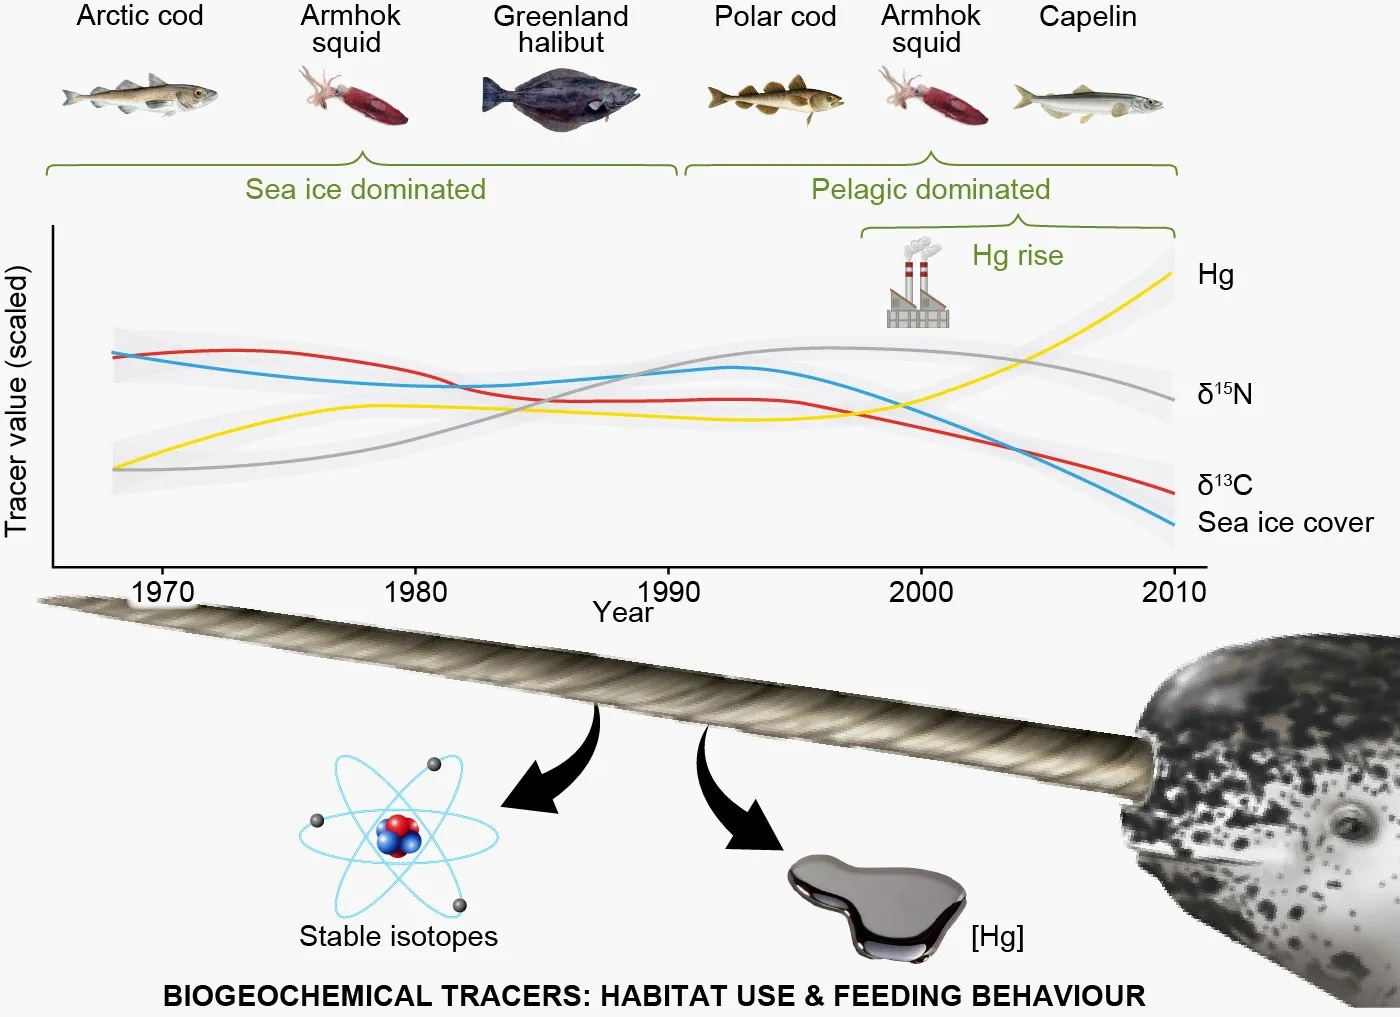 As sea ice has diminished, narwhals have shifted their diets. At the same time, mercury levels (Hg) have been on the rise.